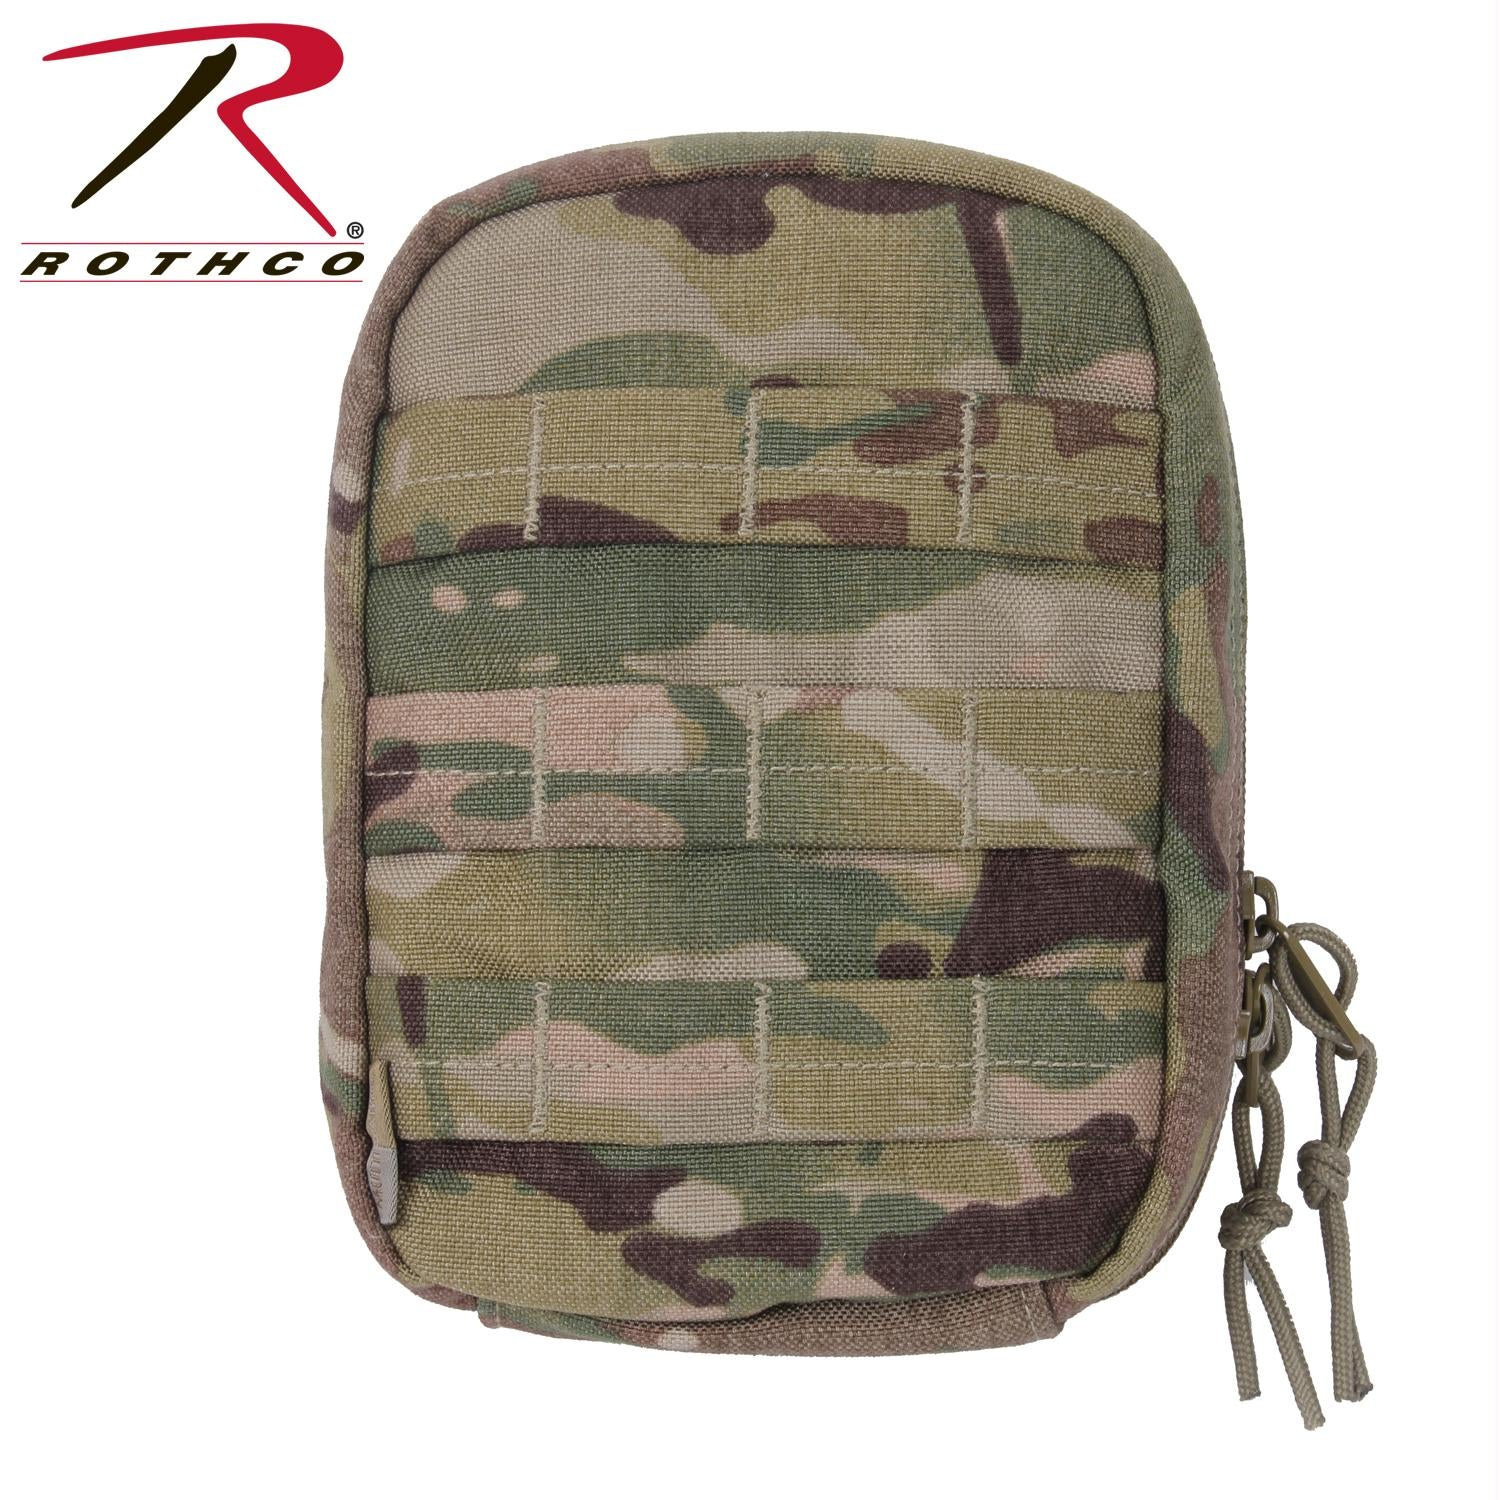 Rothco MOLLE Tactical Trauma & First Aid Kit Pouch - MultiCam